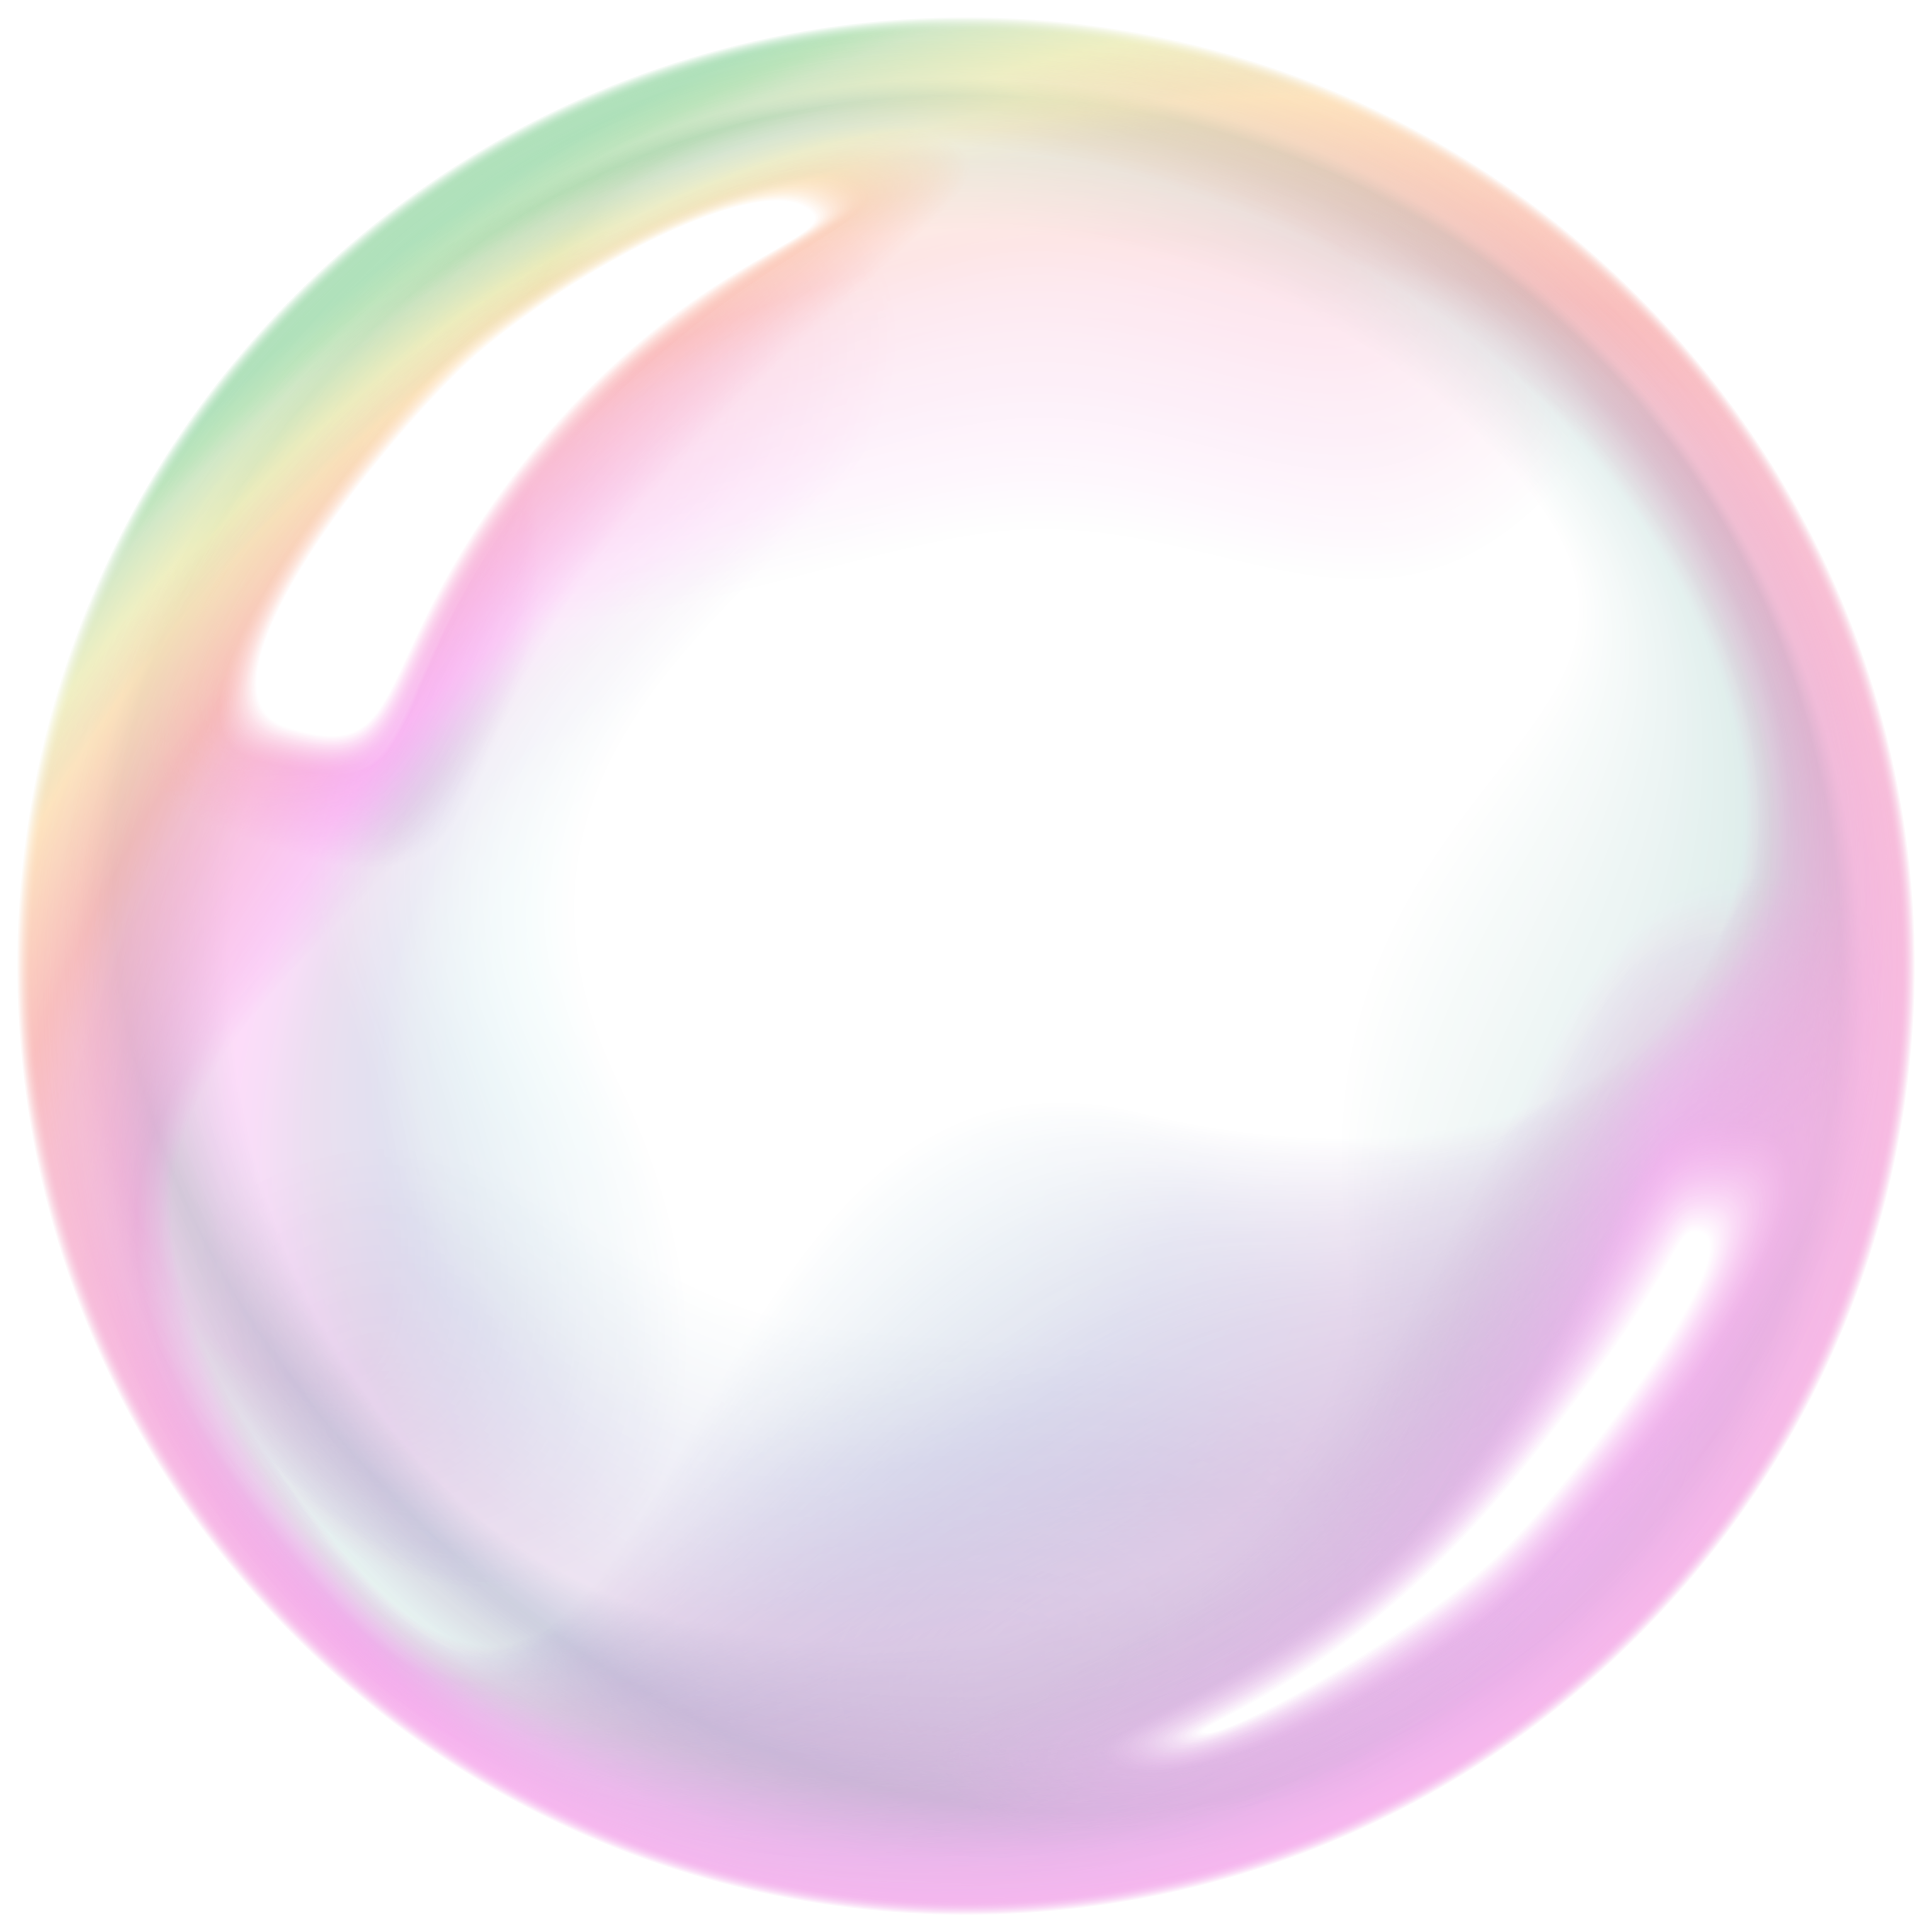 Ball transparent png. Bubble sphere image gallery